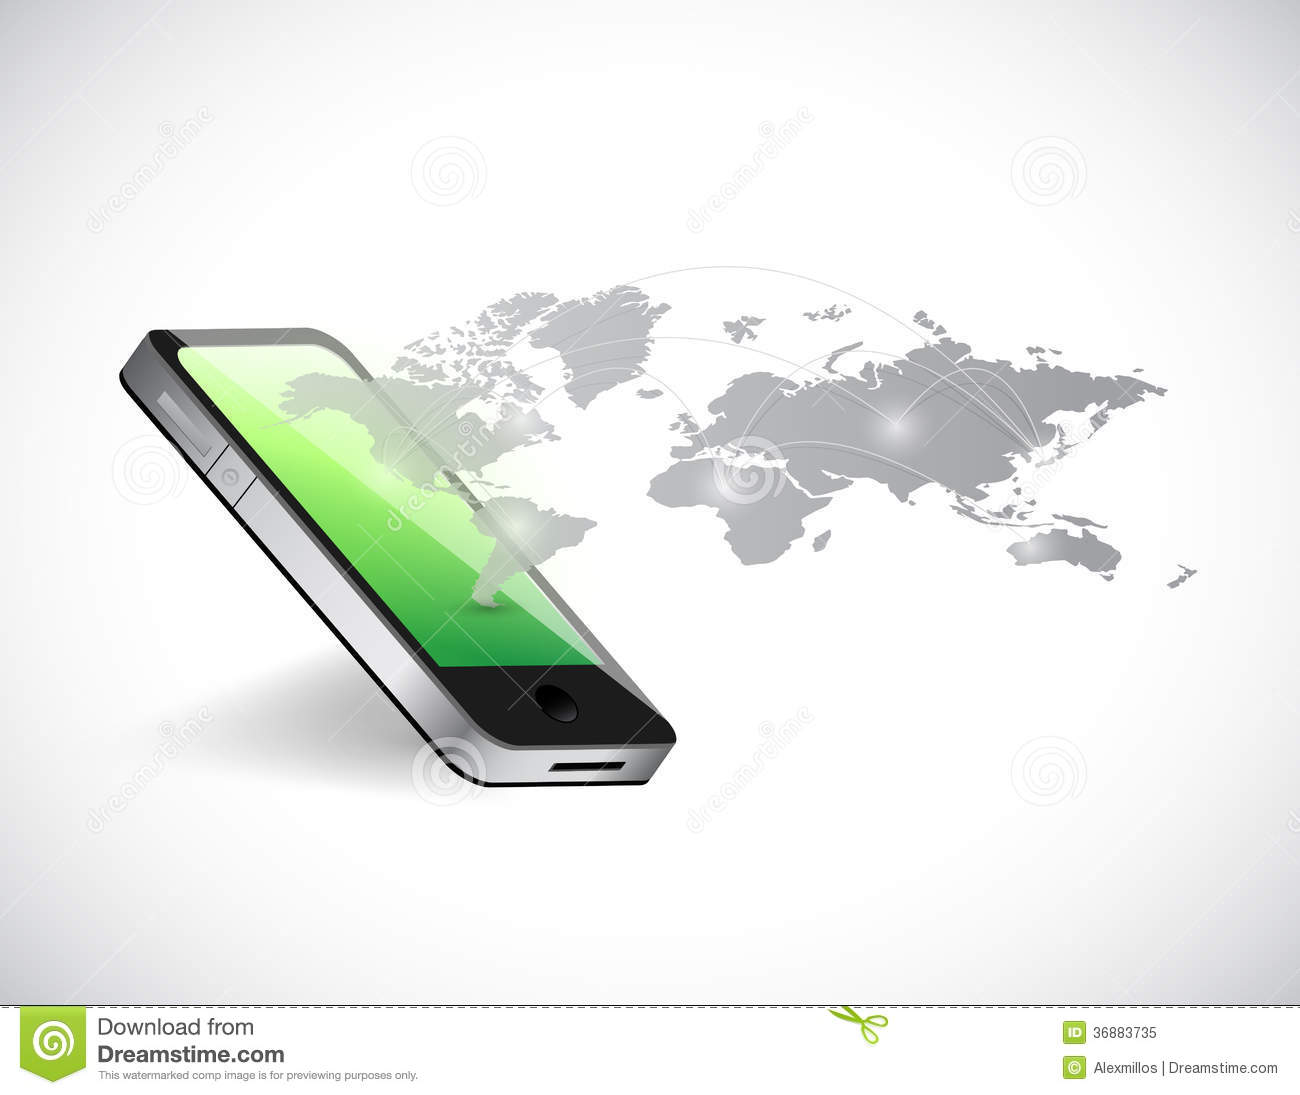 Phone and world map connection map illustration stock illustration royalty free stock photo download phone and world map connection map illustration stock illustration illustration publicscrutiny Choice Image